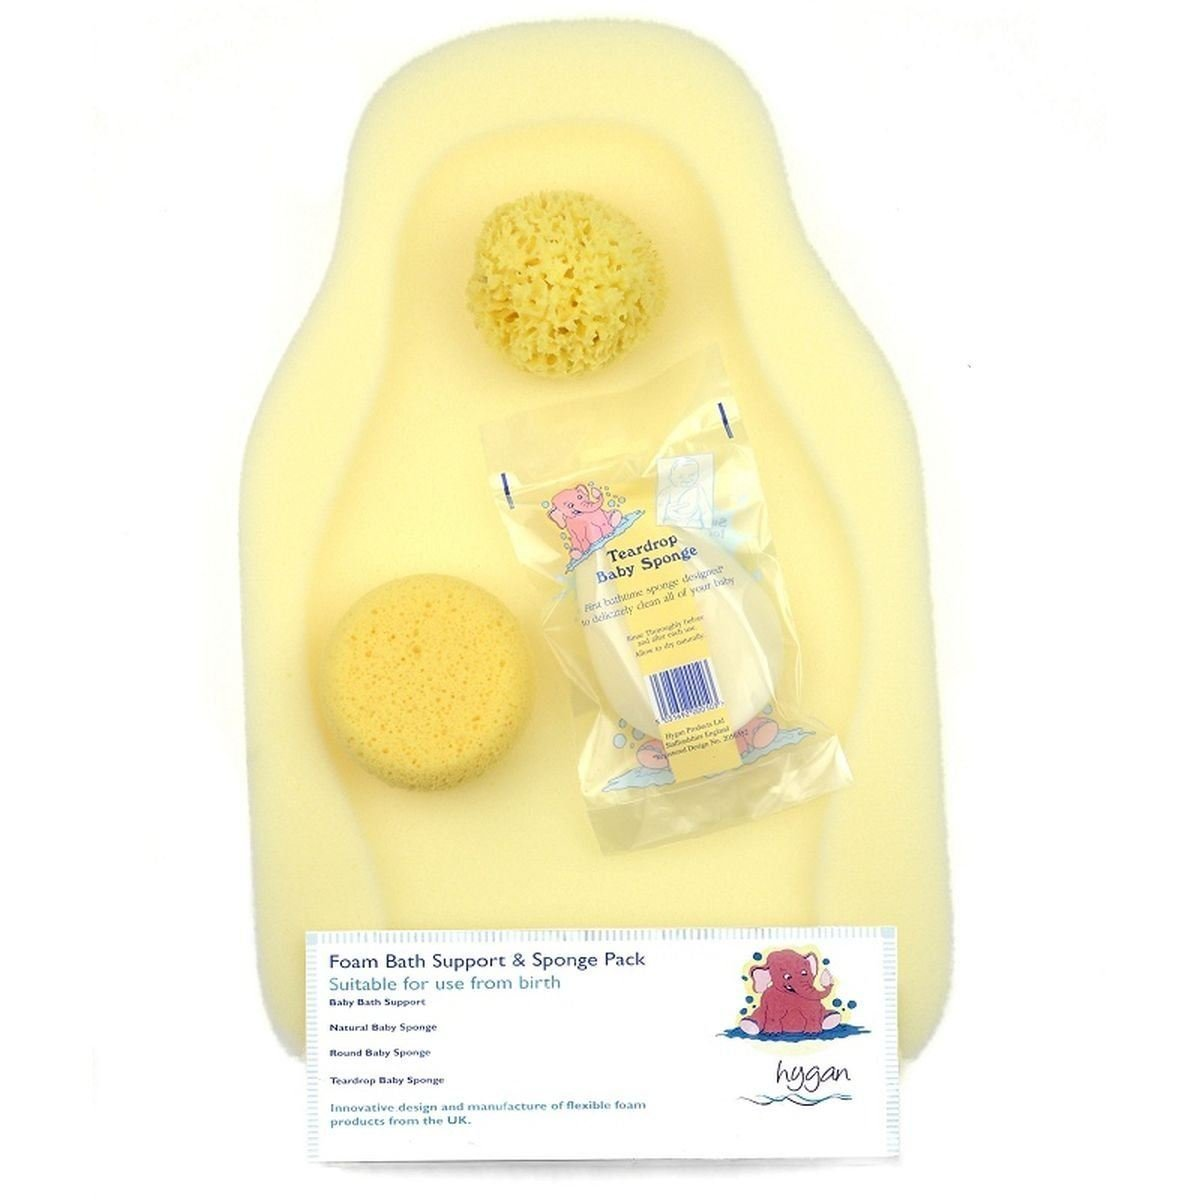 Amazon.com: Hygan Foam Bath Support & Sponge Pack: Health & Personal ...